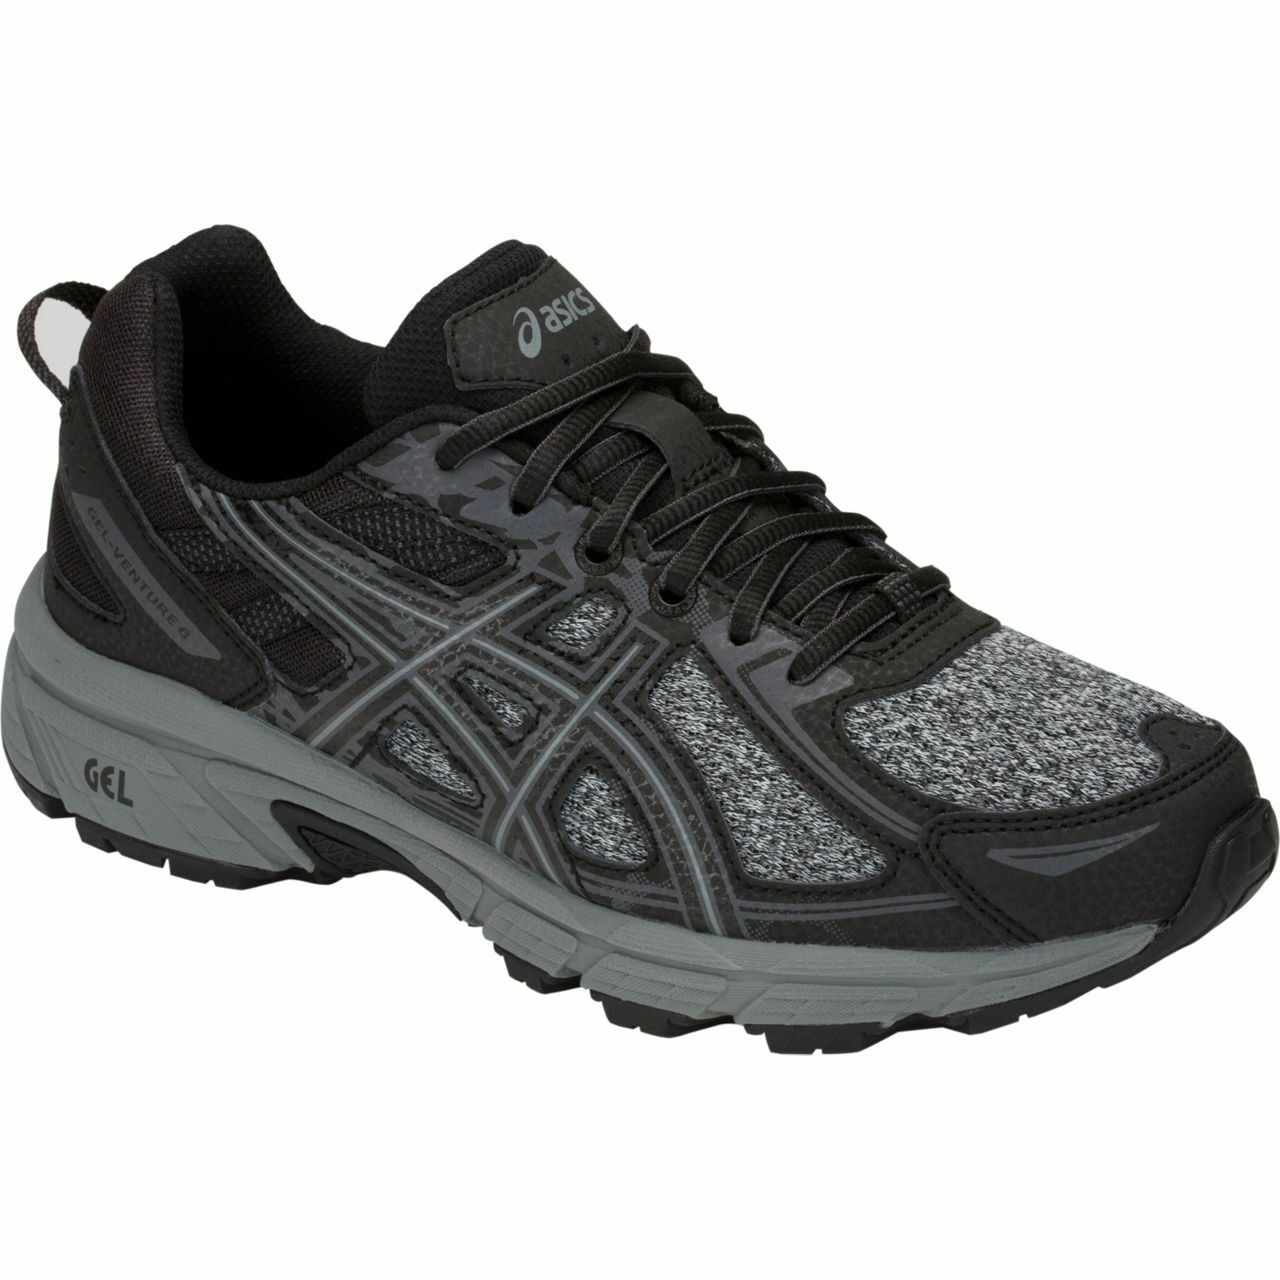 LATEST    Asics Gel Venture 6 Womens Trail Running shoes (D) (1012A505 001)